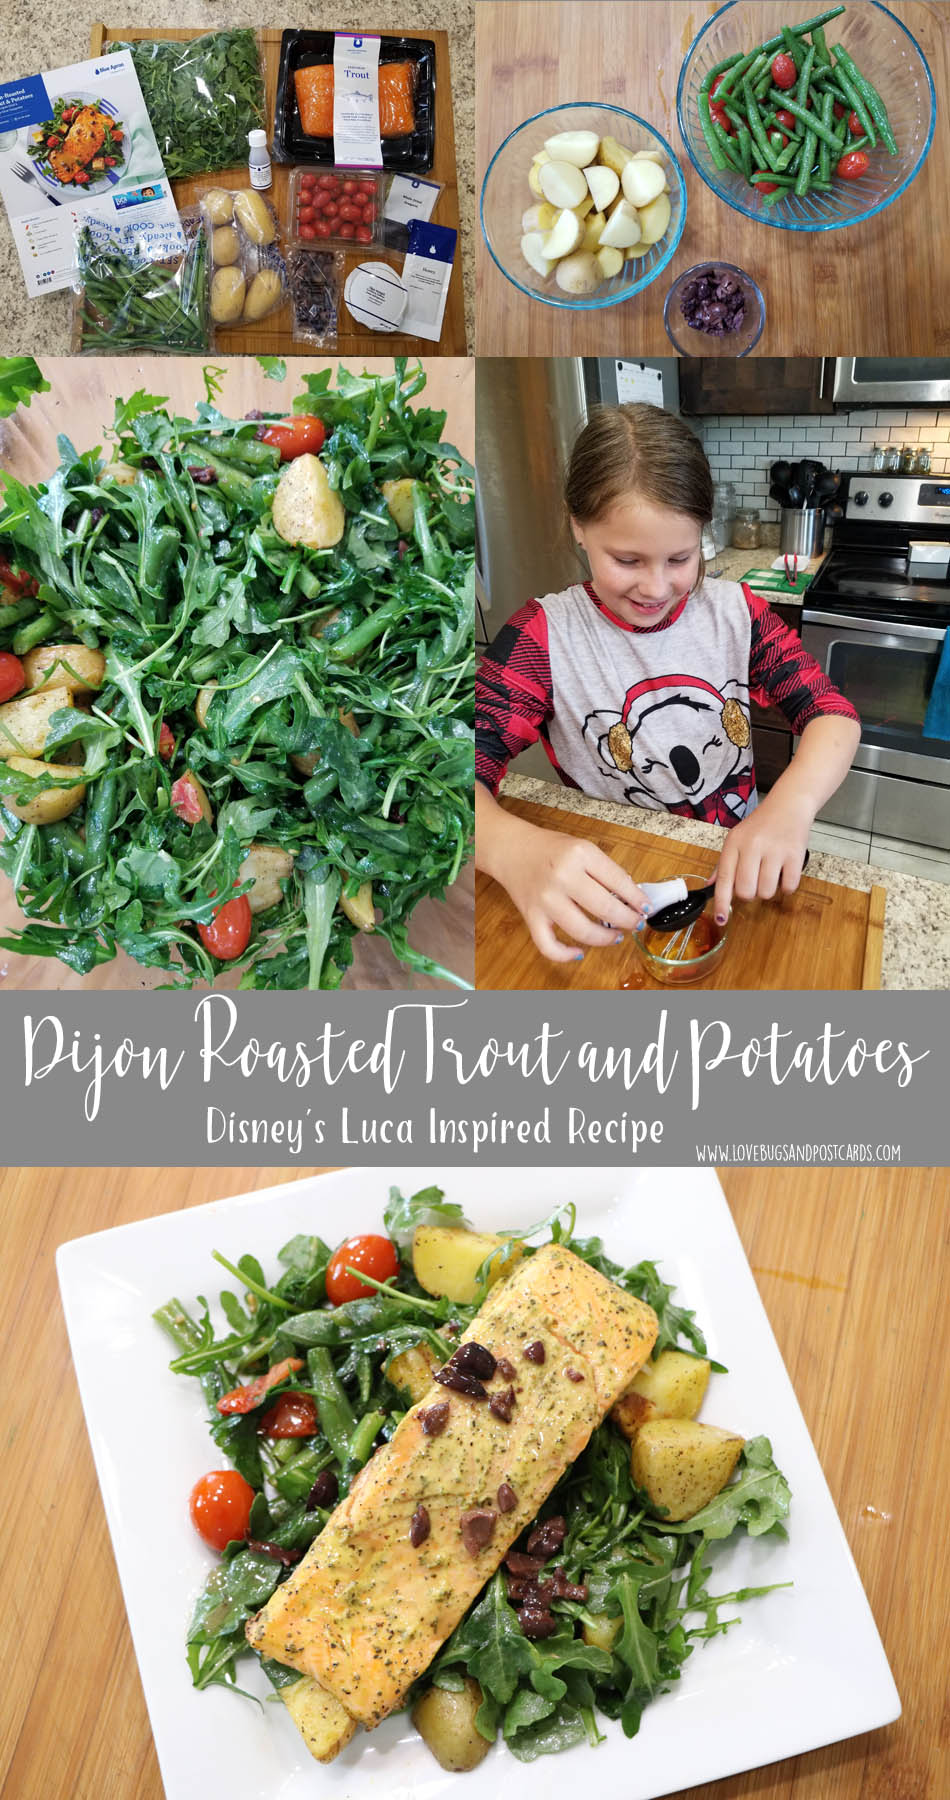 Get inspired by these Disney's Luca Recipes  - Dijon Roasted Trout and Potatoes